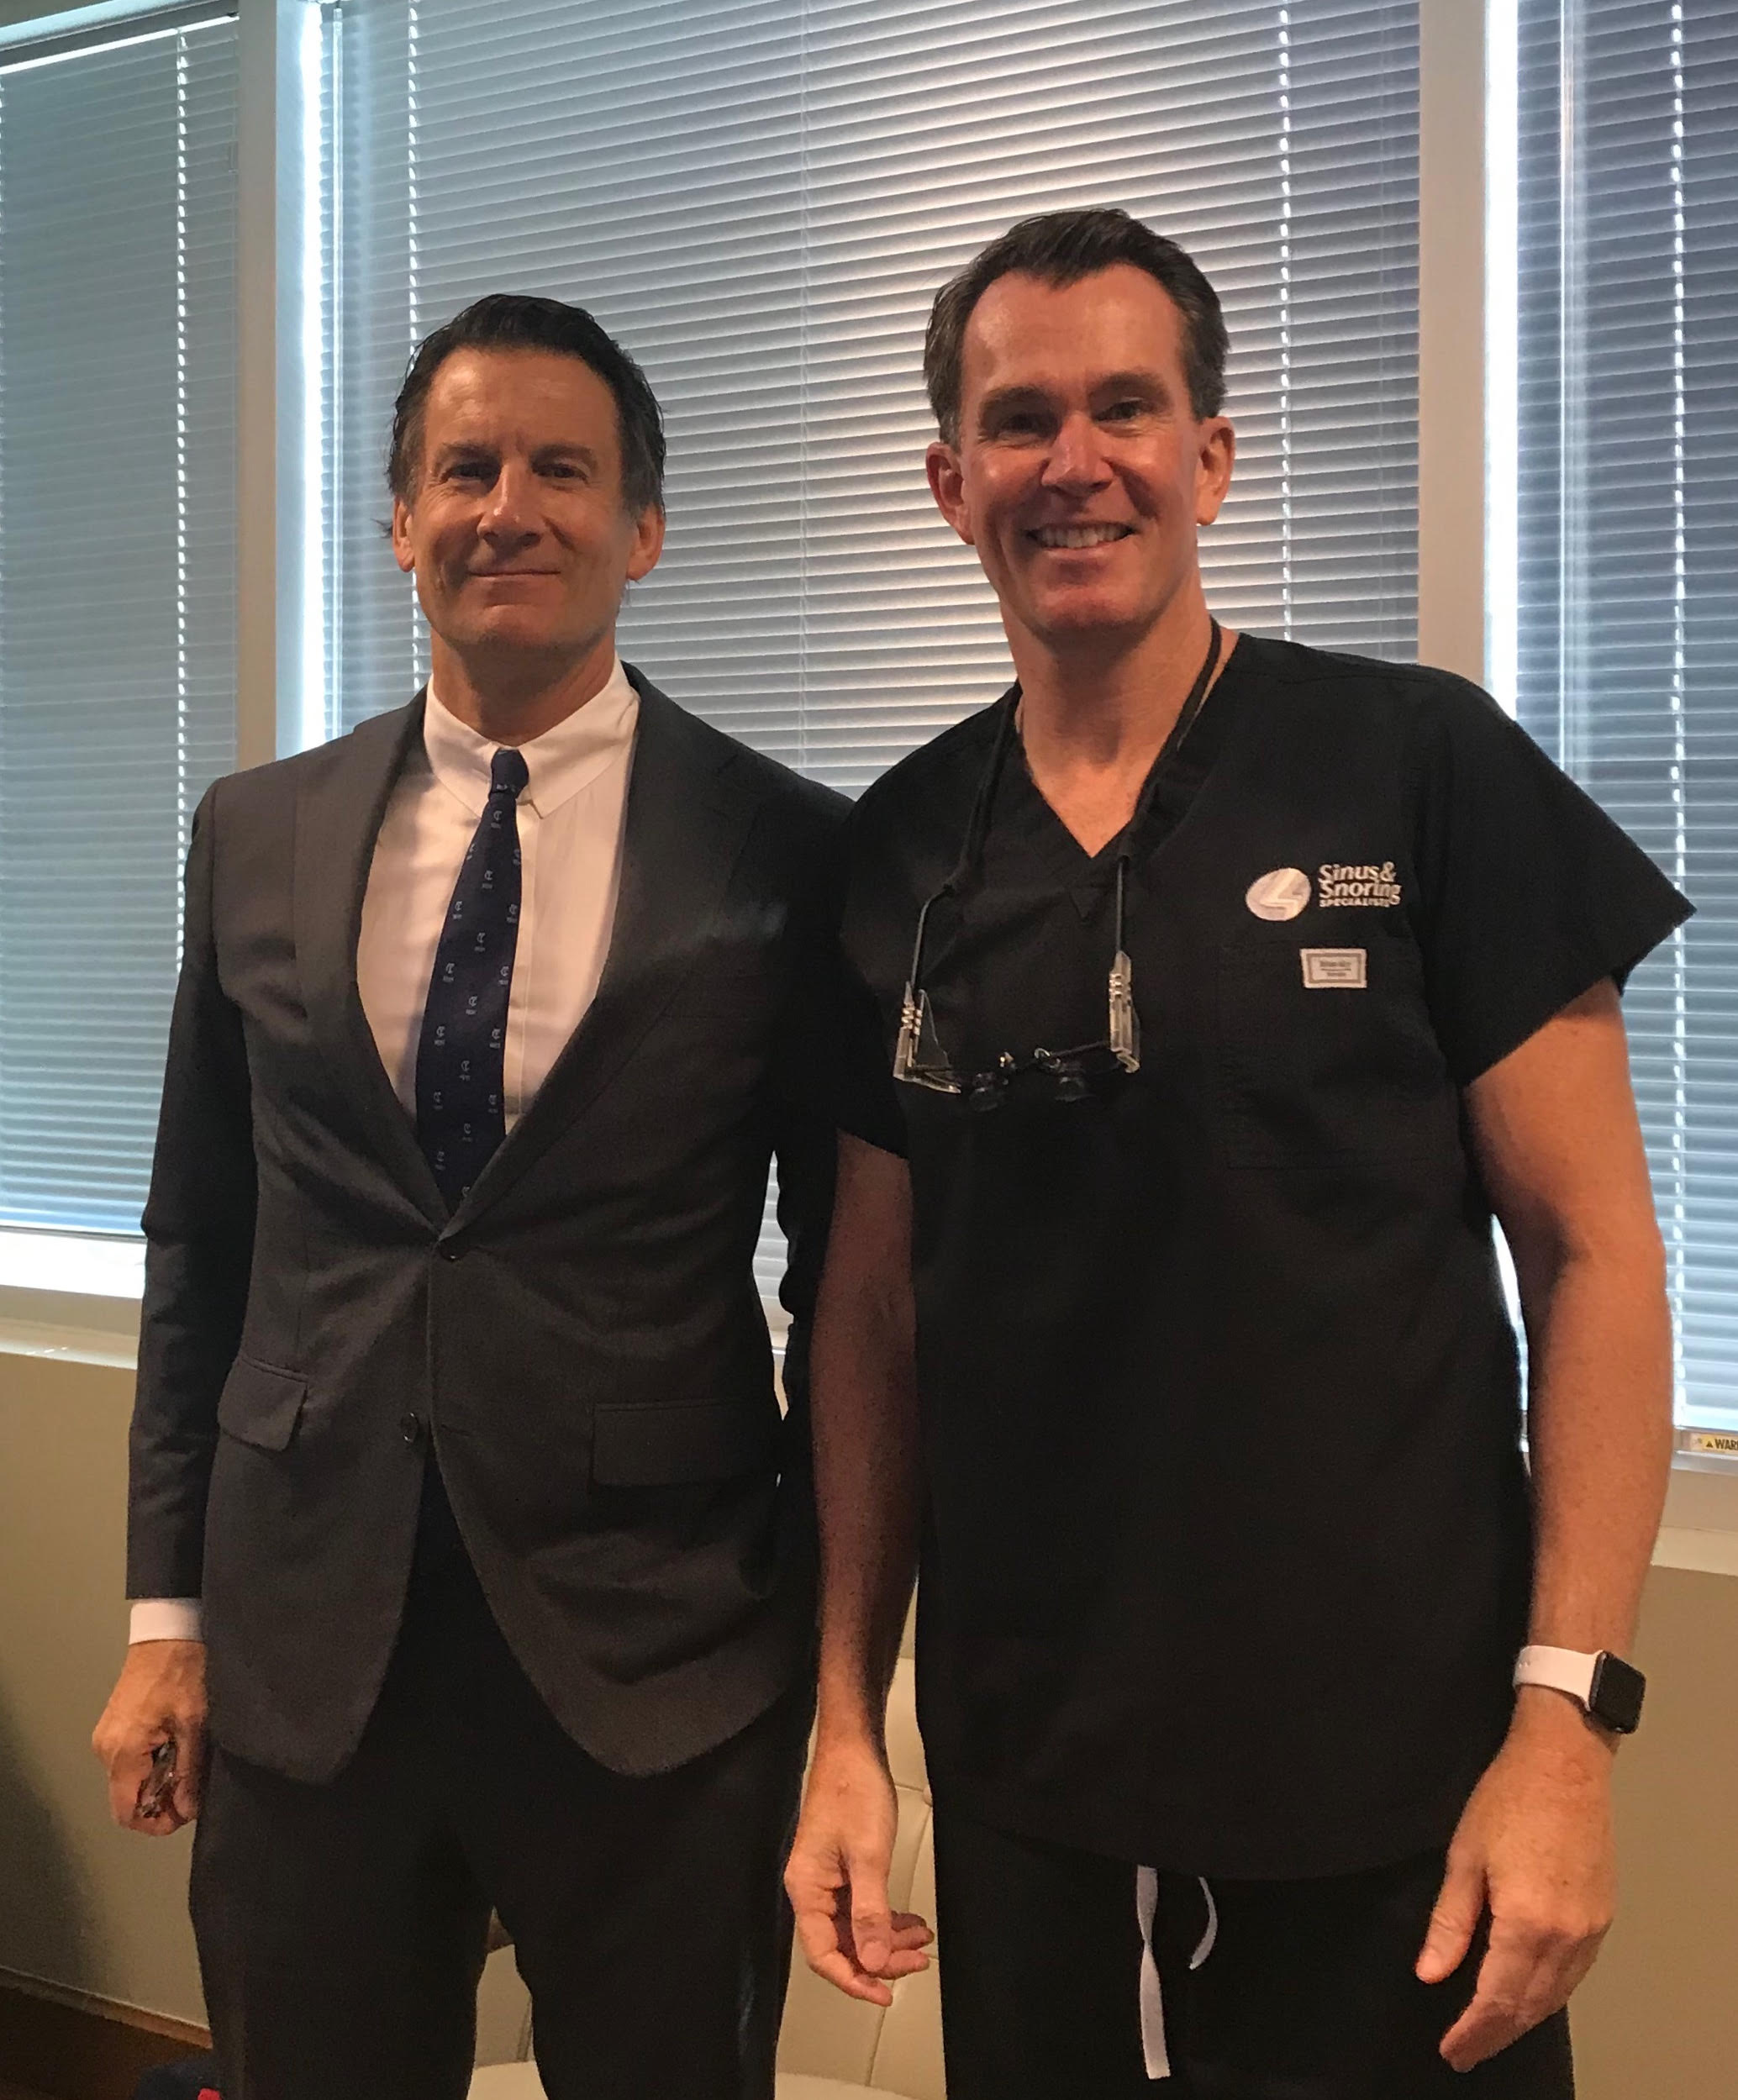 Dr. C. Bart Dickson observes Dr. Slaughter | Sinus & Snoring Specialists